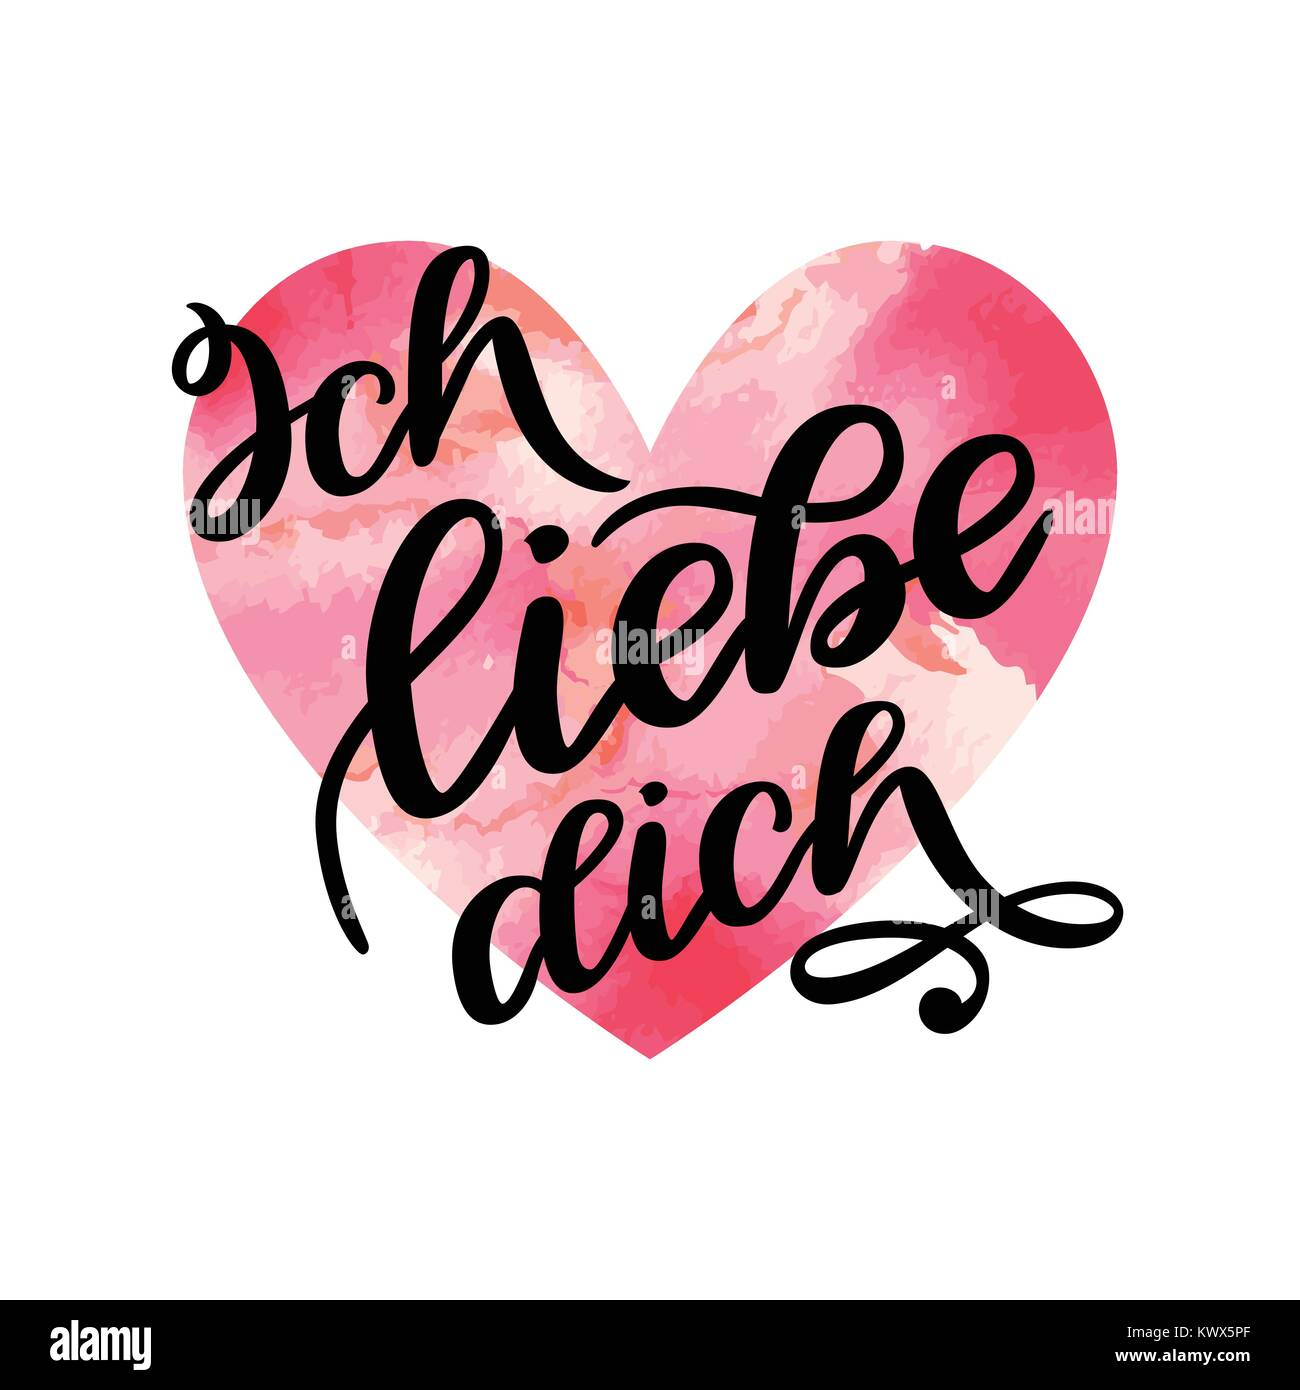 Handwritten Text In German Ich Liebe Dich Love You Postcard